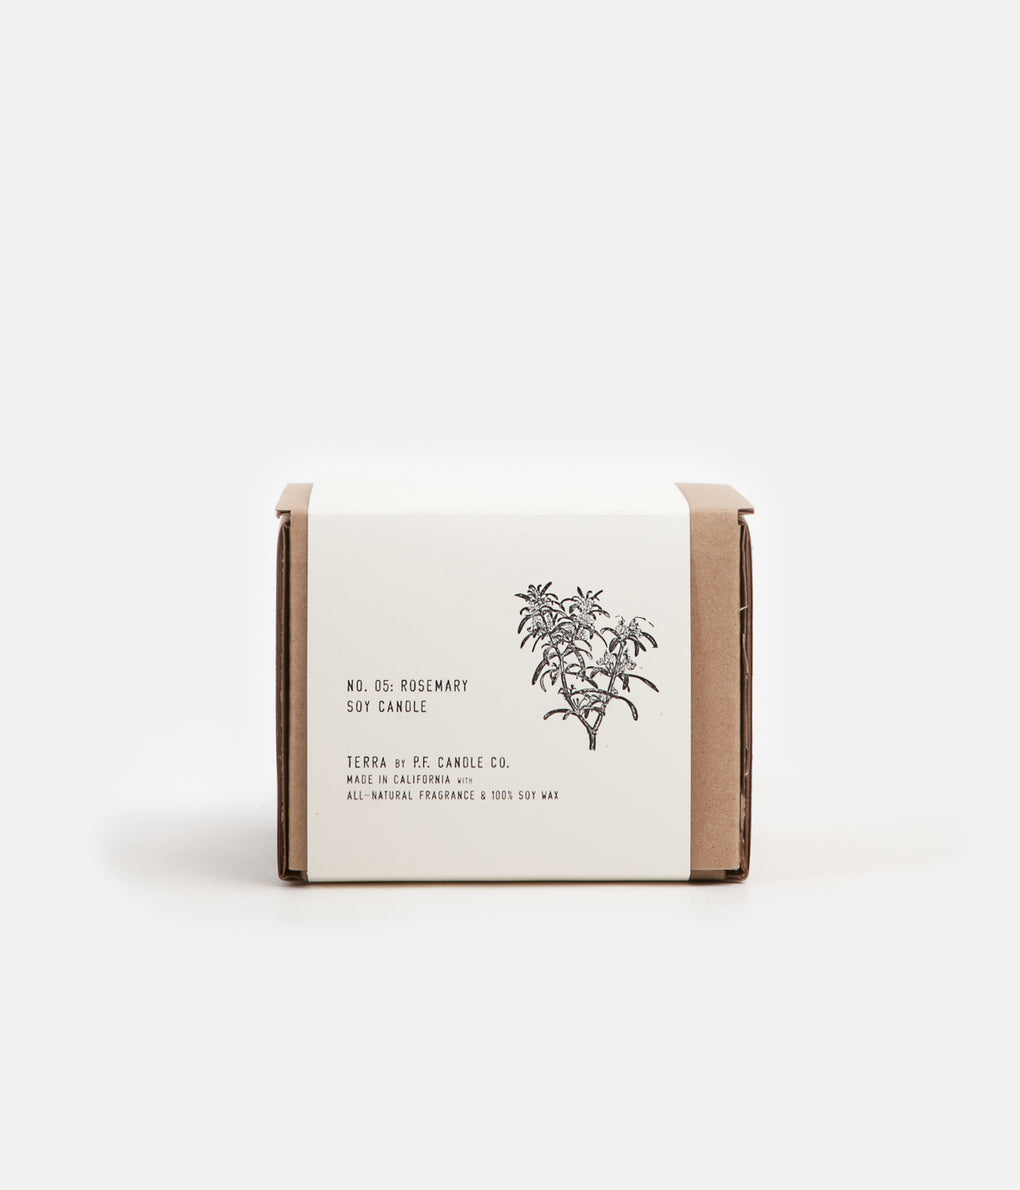 P.F. Candle Co. No. 5 Rosemary Terra Candle - 17.5oz